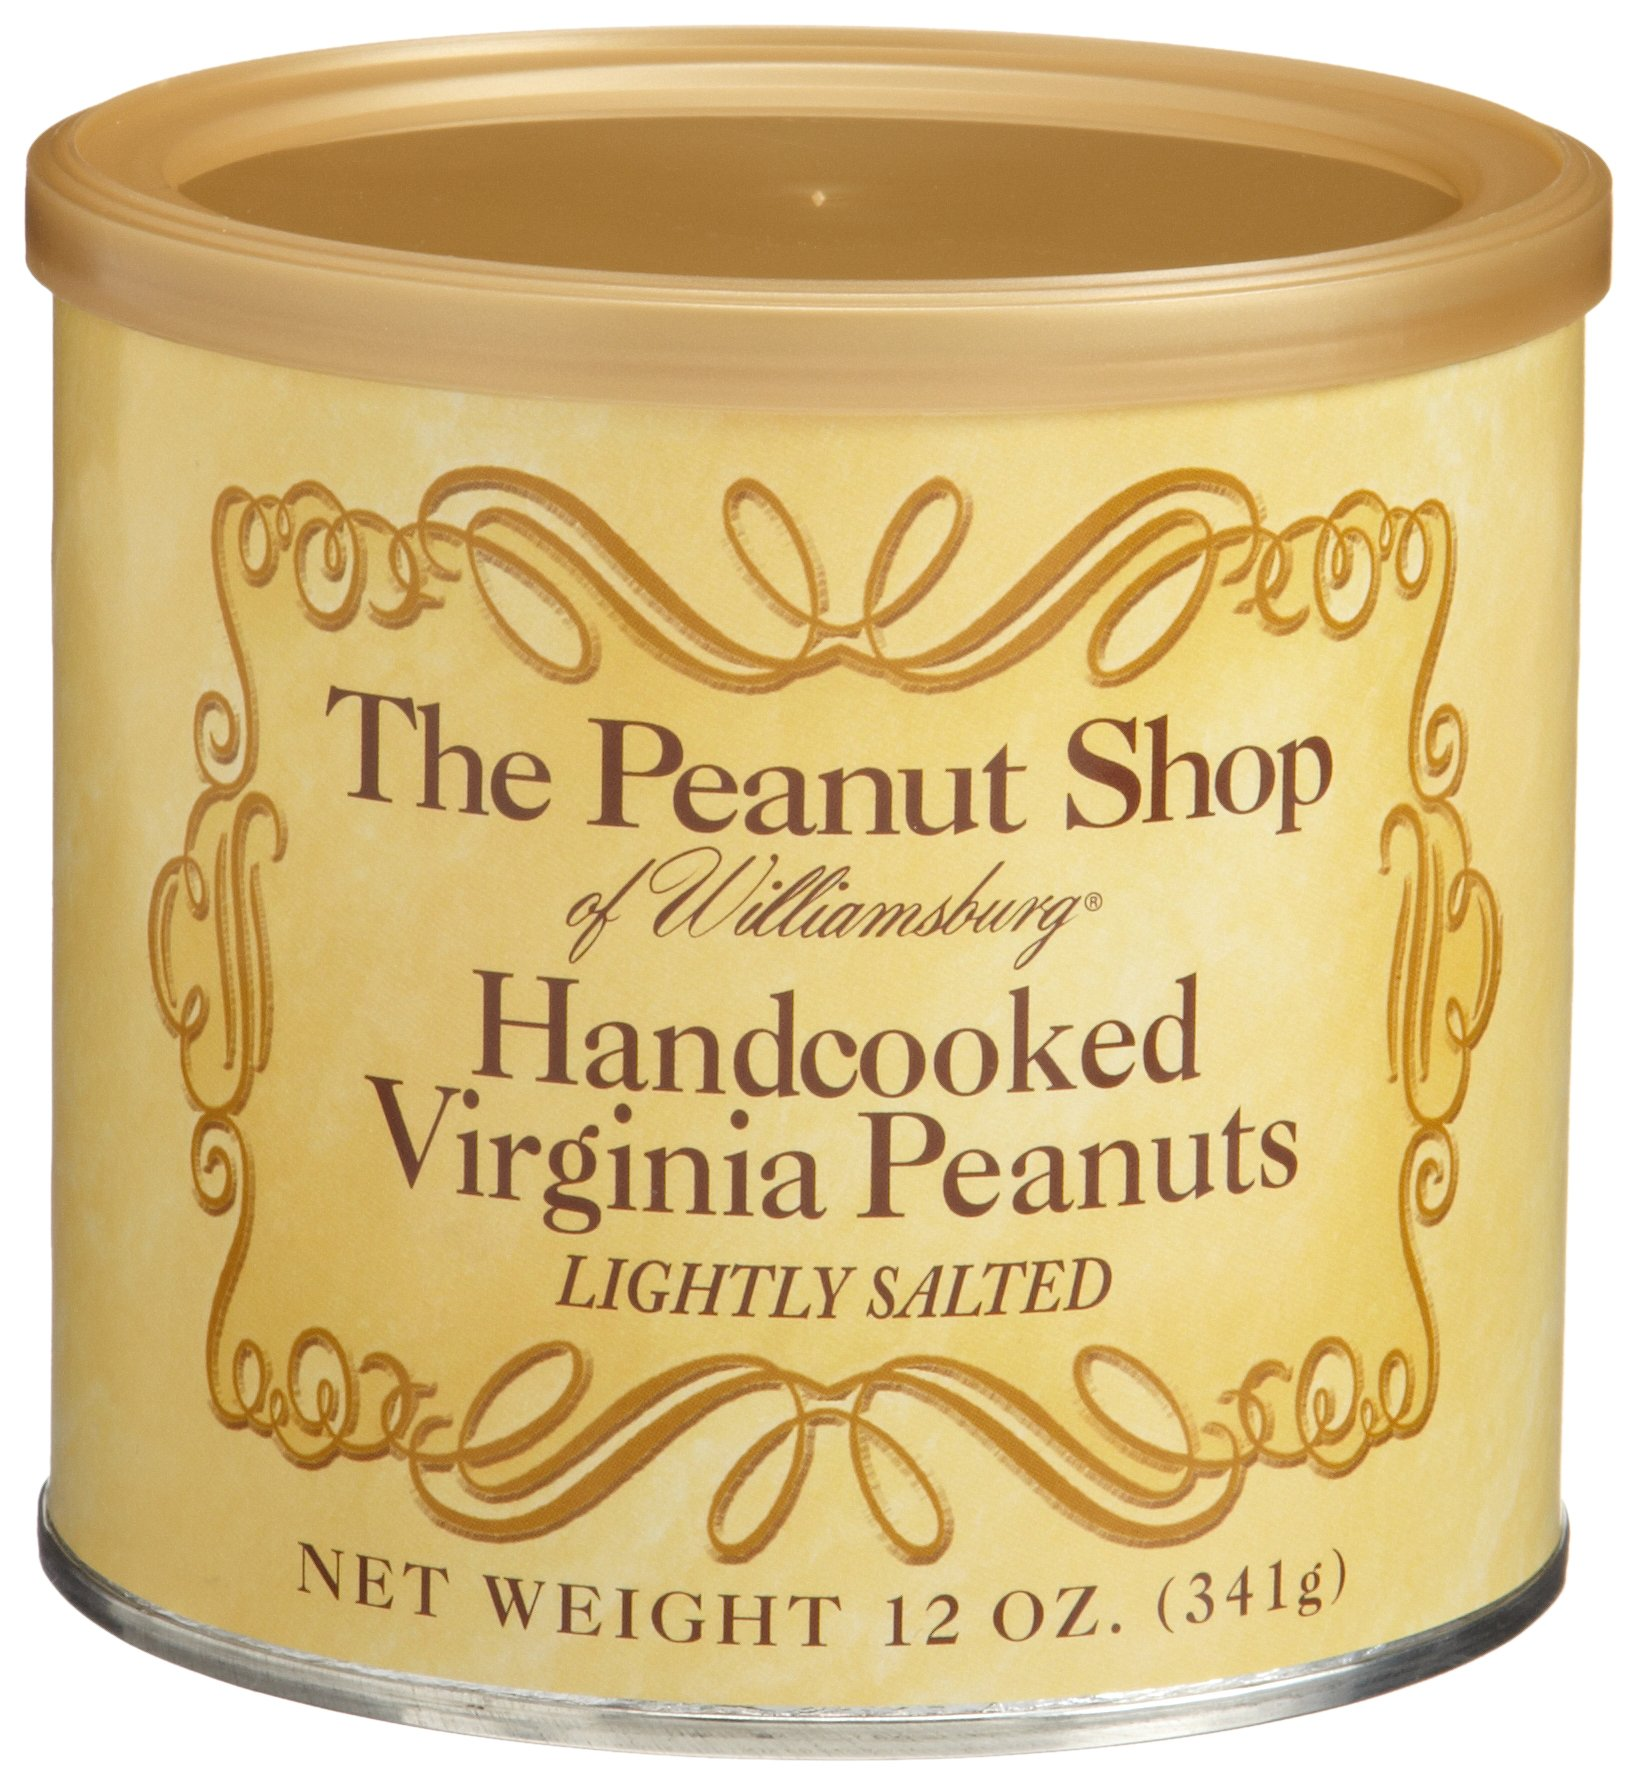 The Peanut Shop of Williamsburg Handcooked Lightly Salted Virginia Peanuts, 10.5-Ounce Tins (Pack of 3)